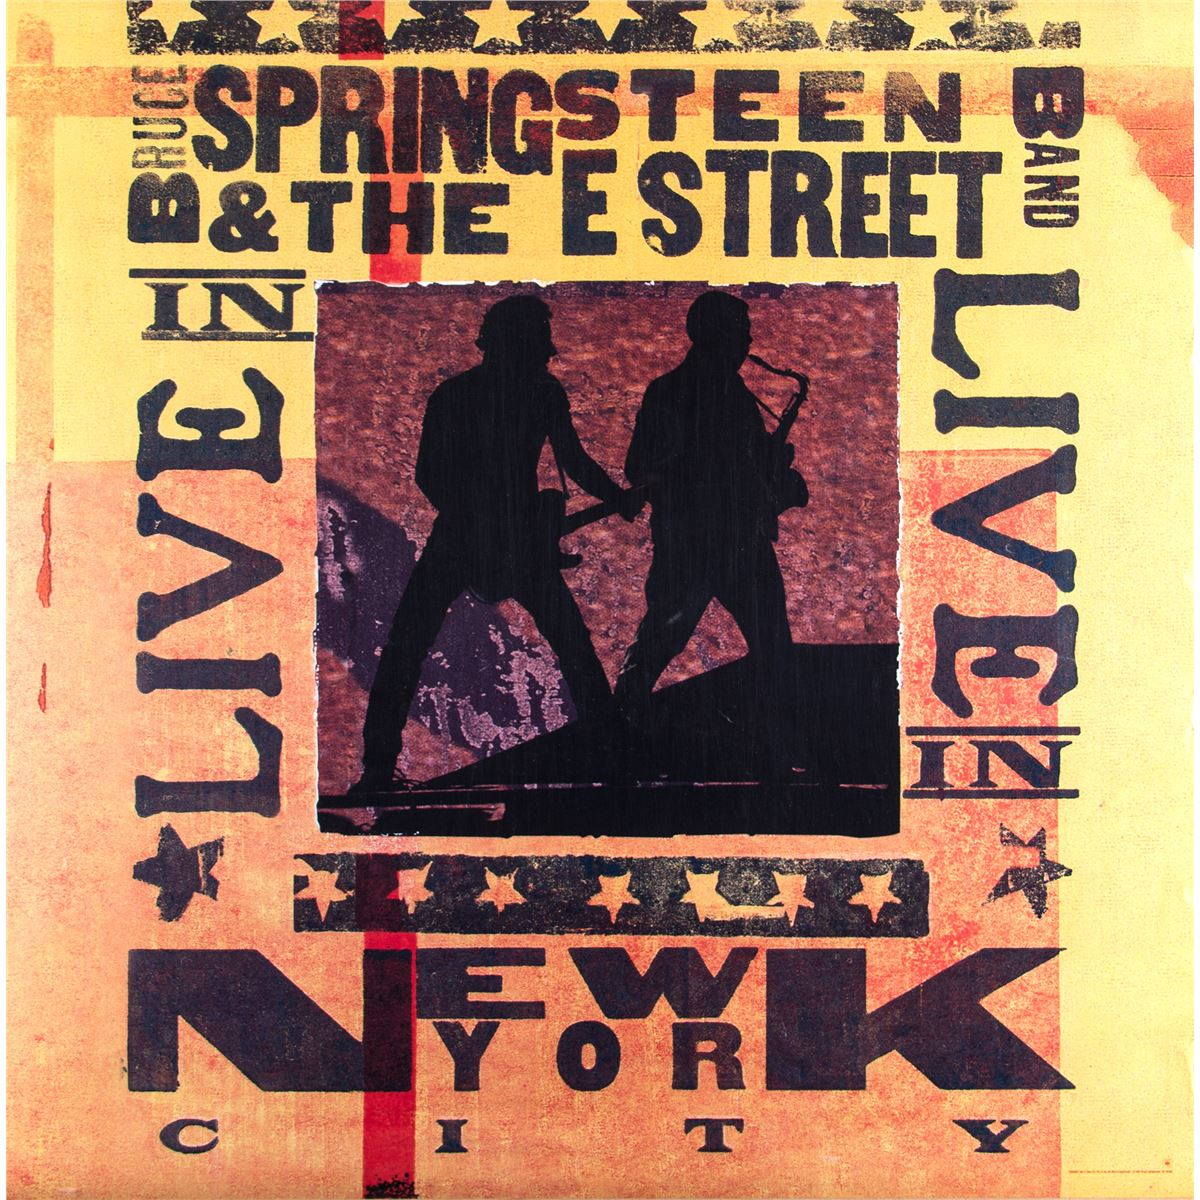 Bruce Springsteen and the E Street Band, NYC, 1977 | Lynn ...